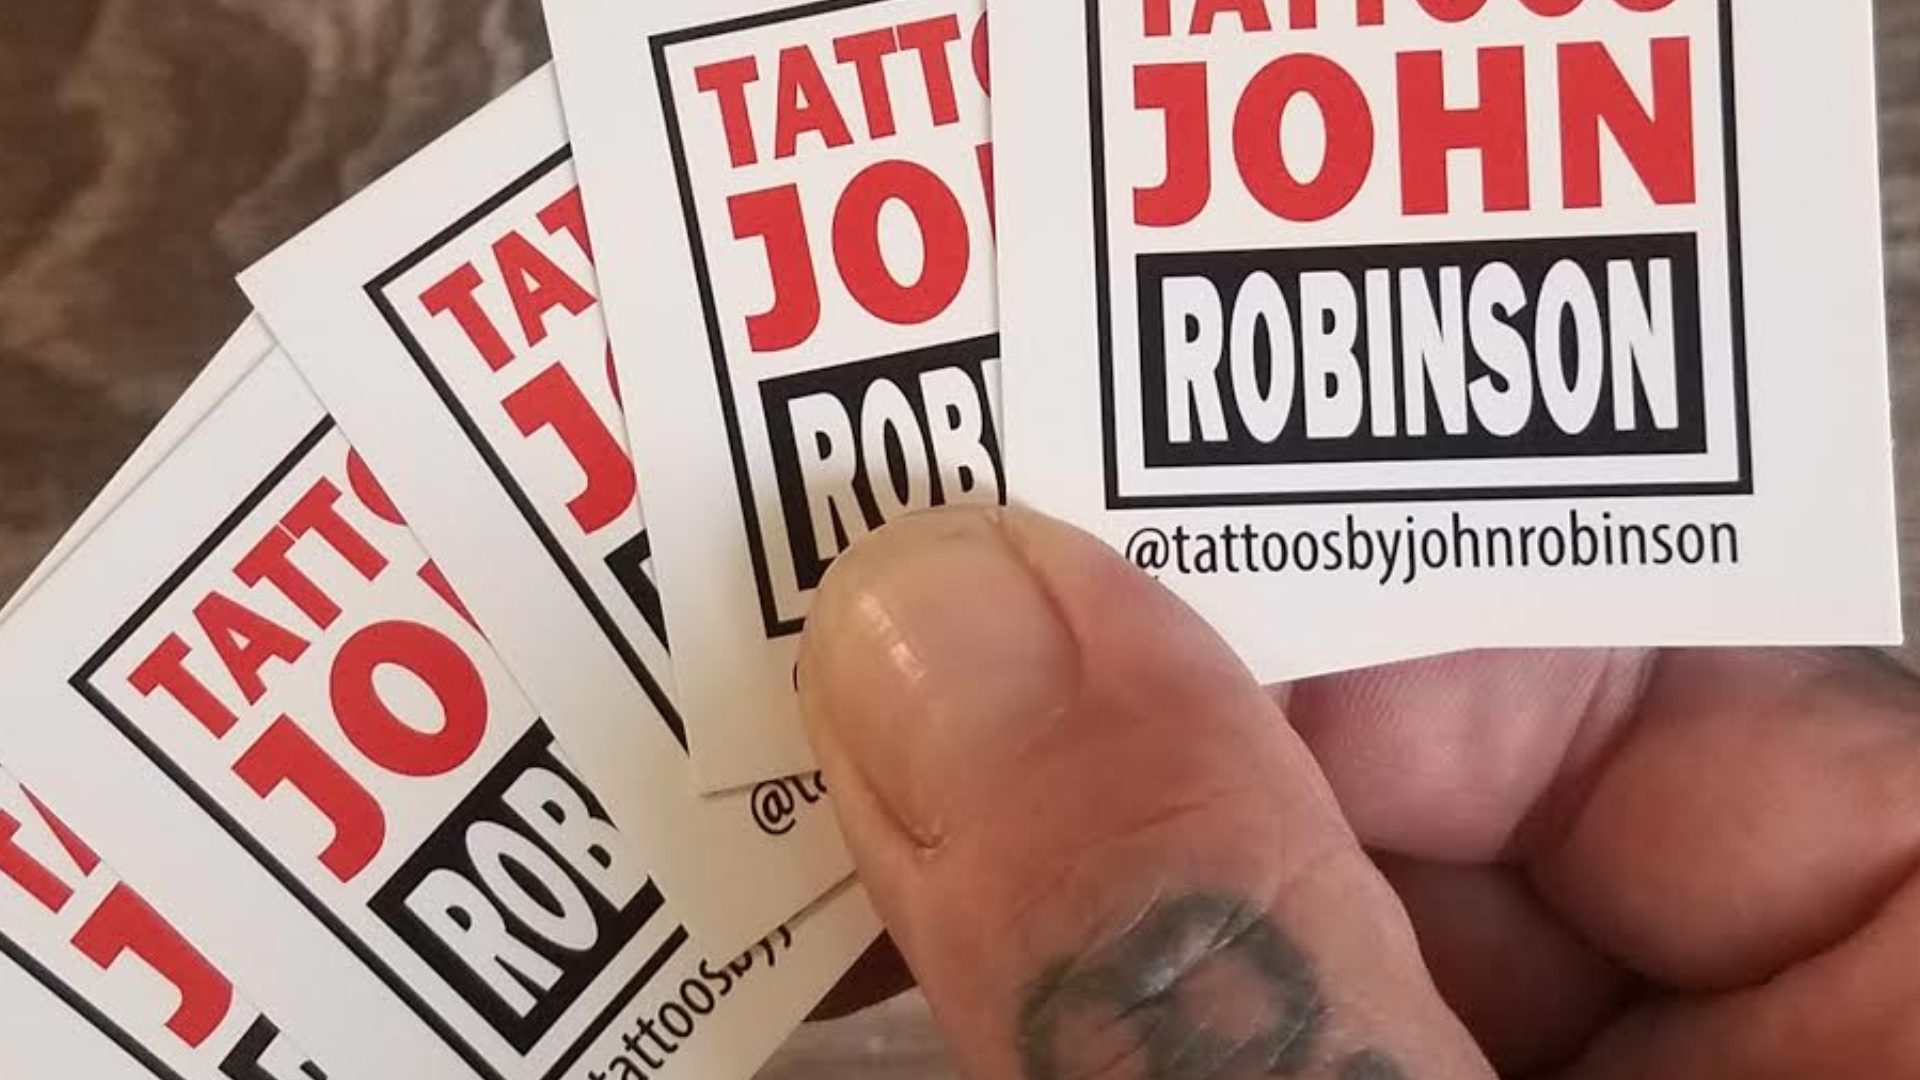 Square Business Cards for Tattoo Artist (4)